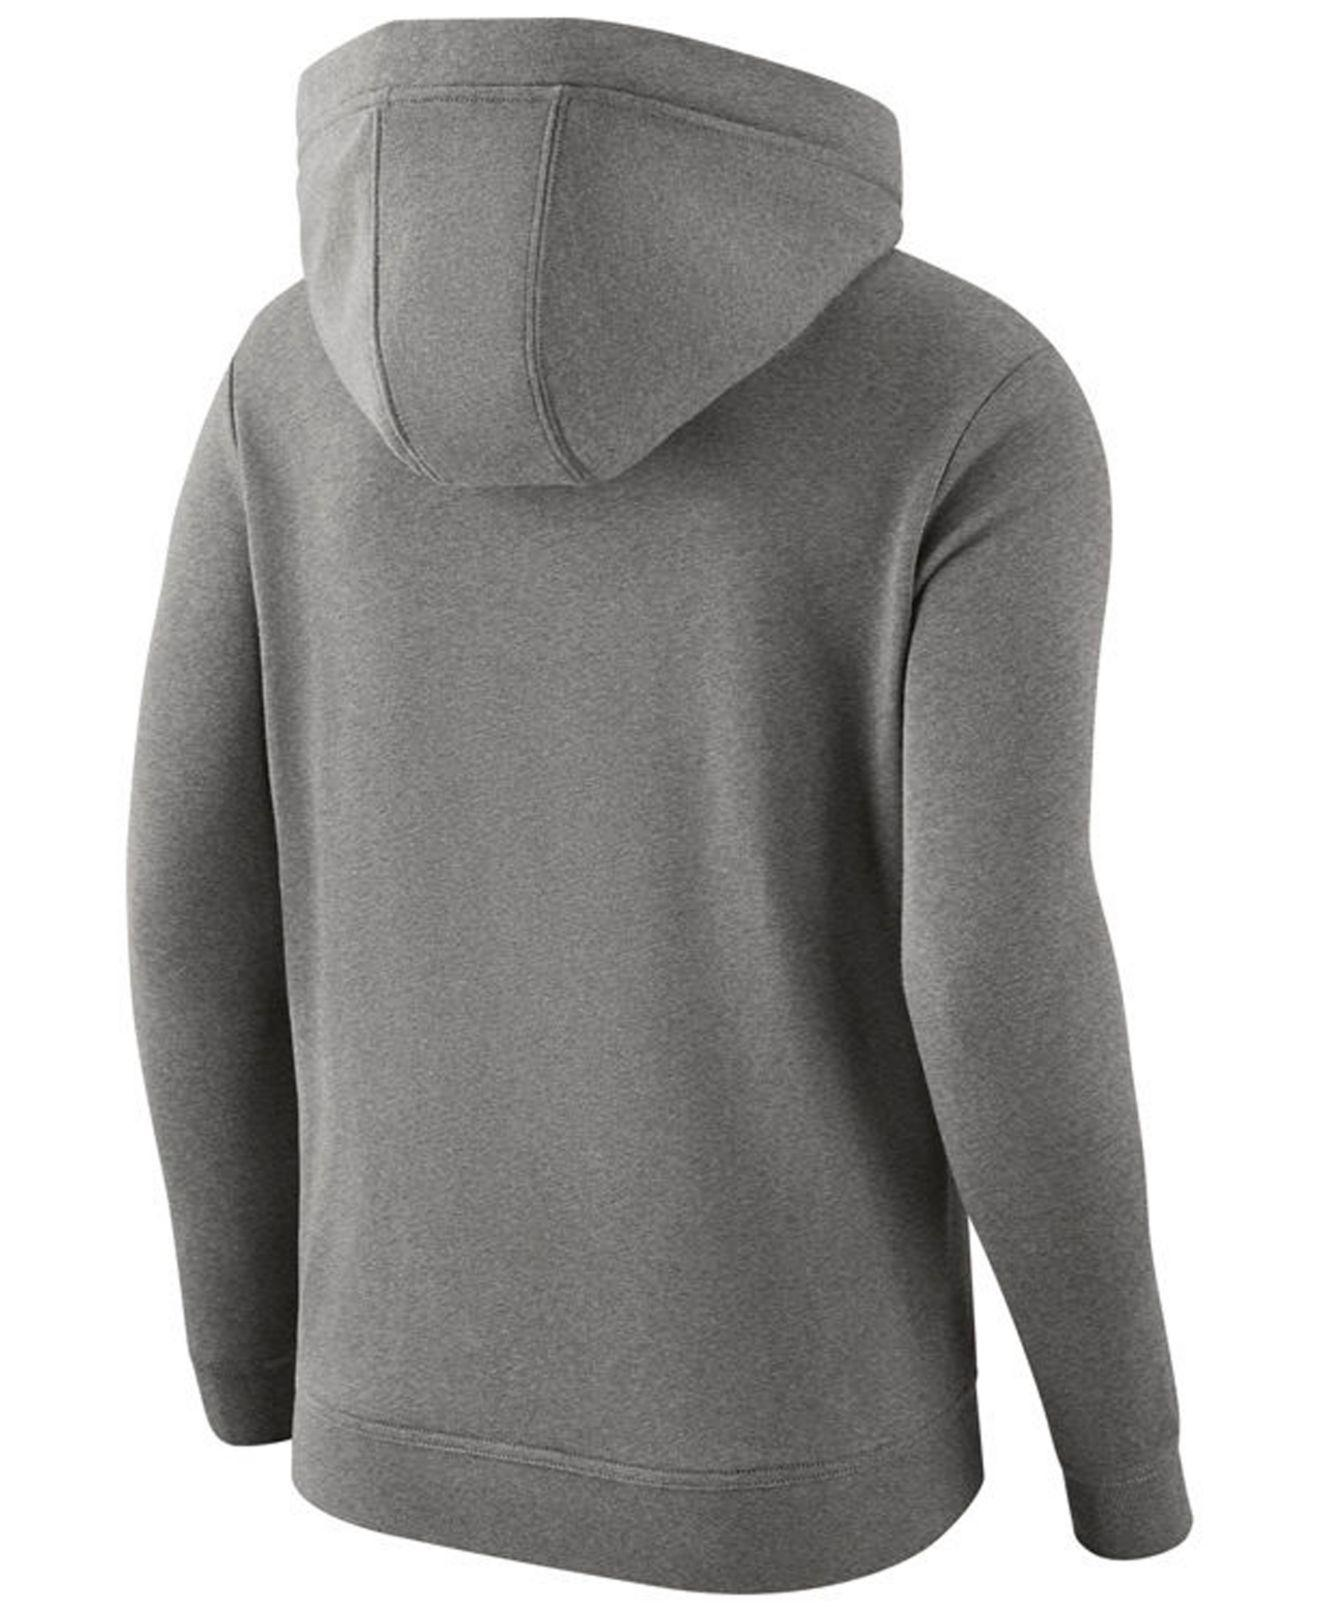 Top Lyst Nike Dallas Cowboys Club Pullover Hoodie in Gray  for cheap